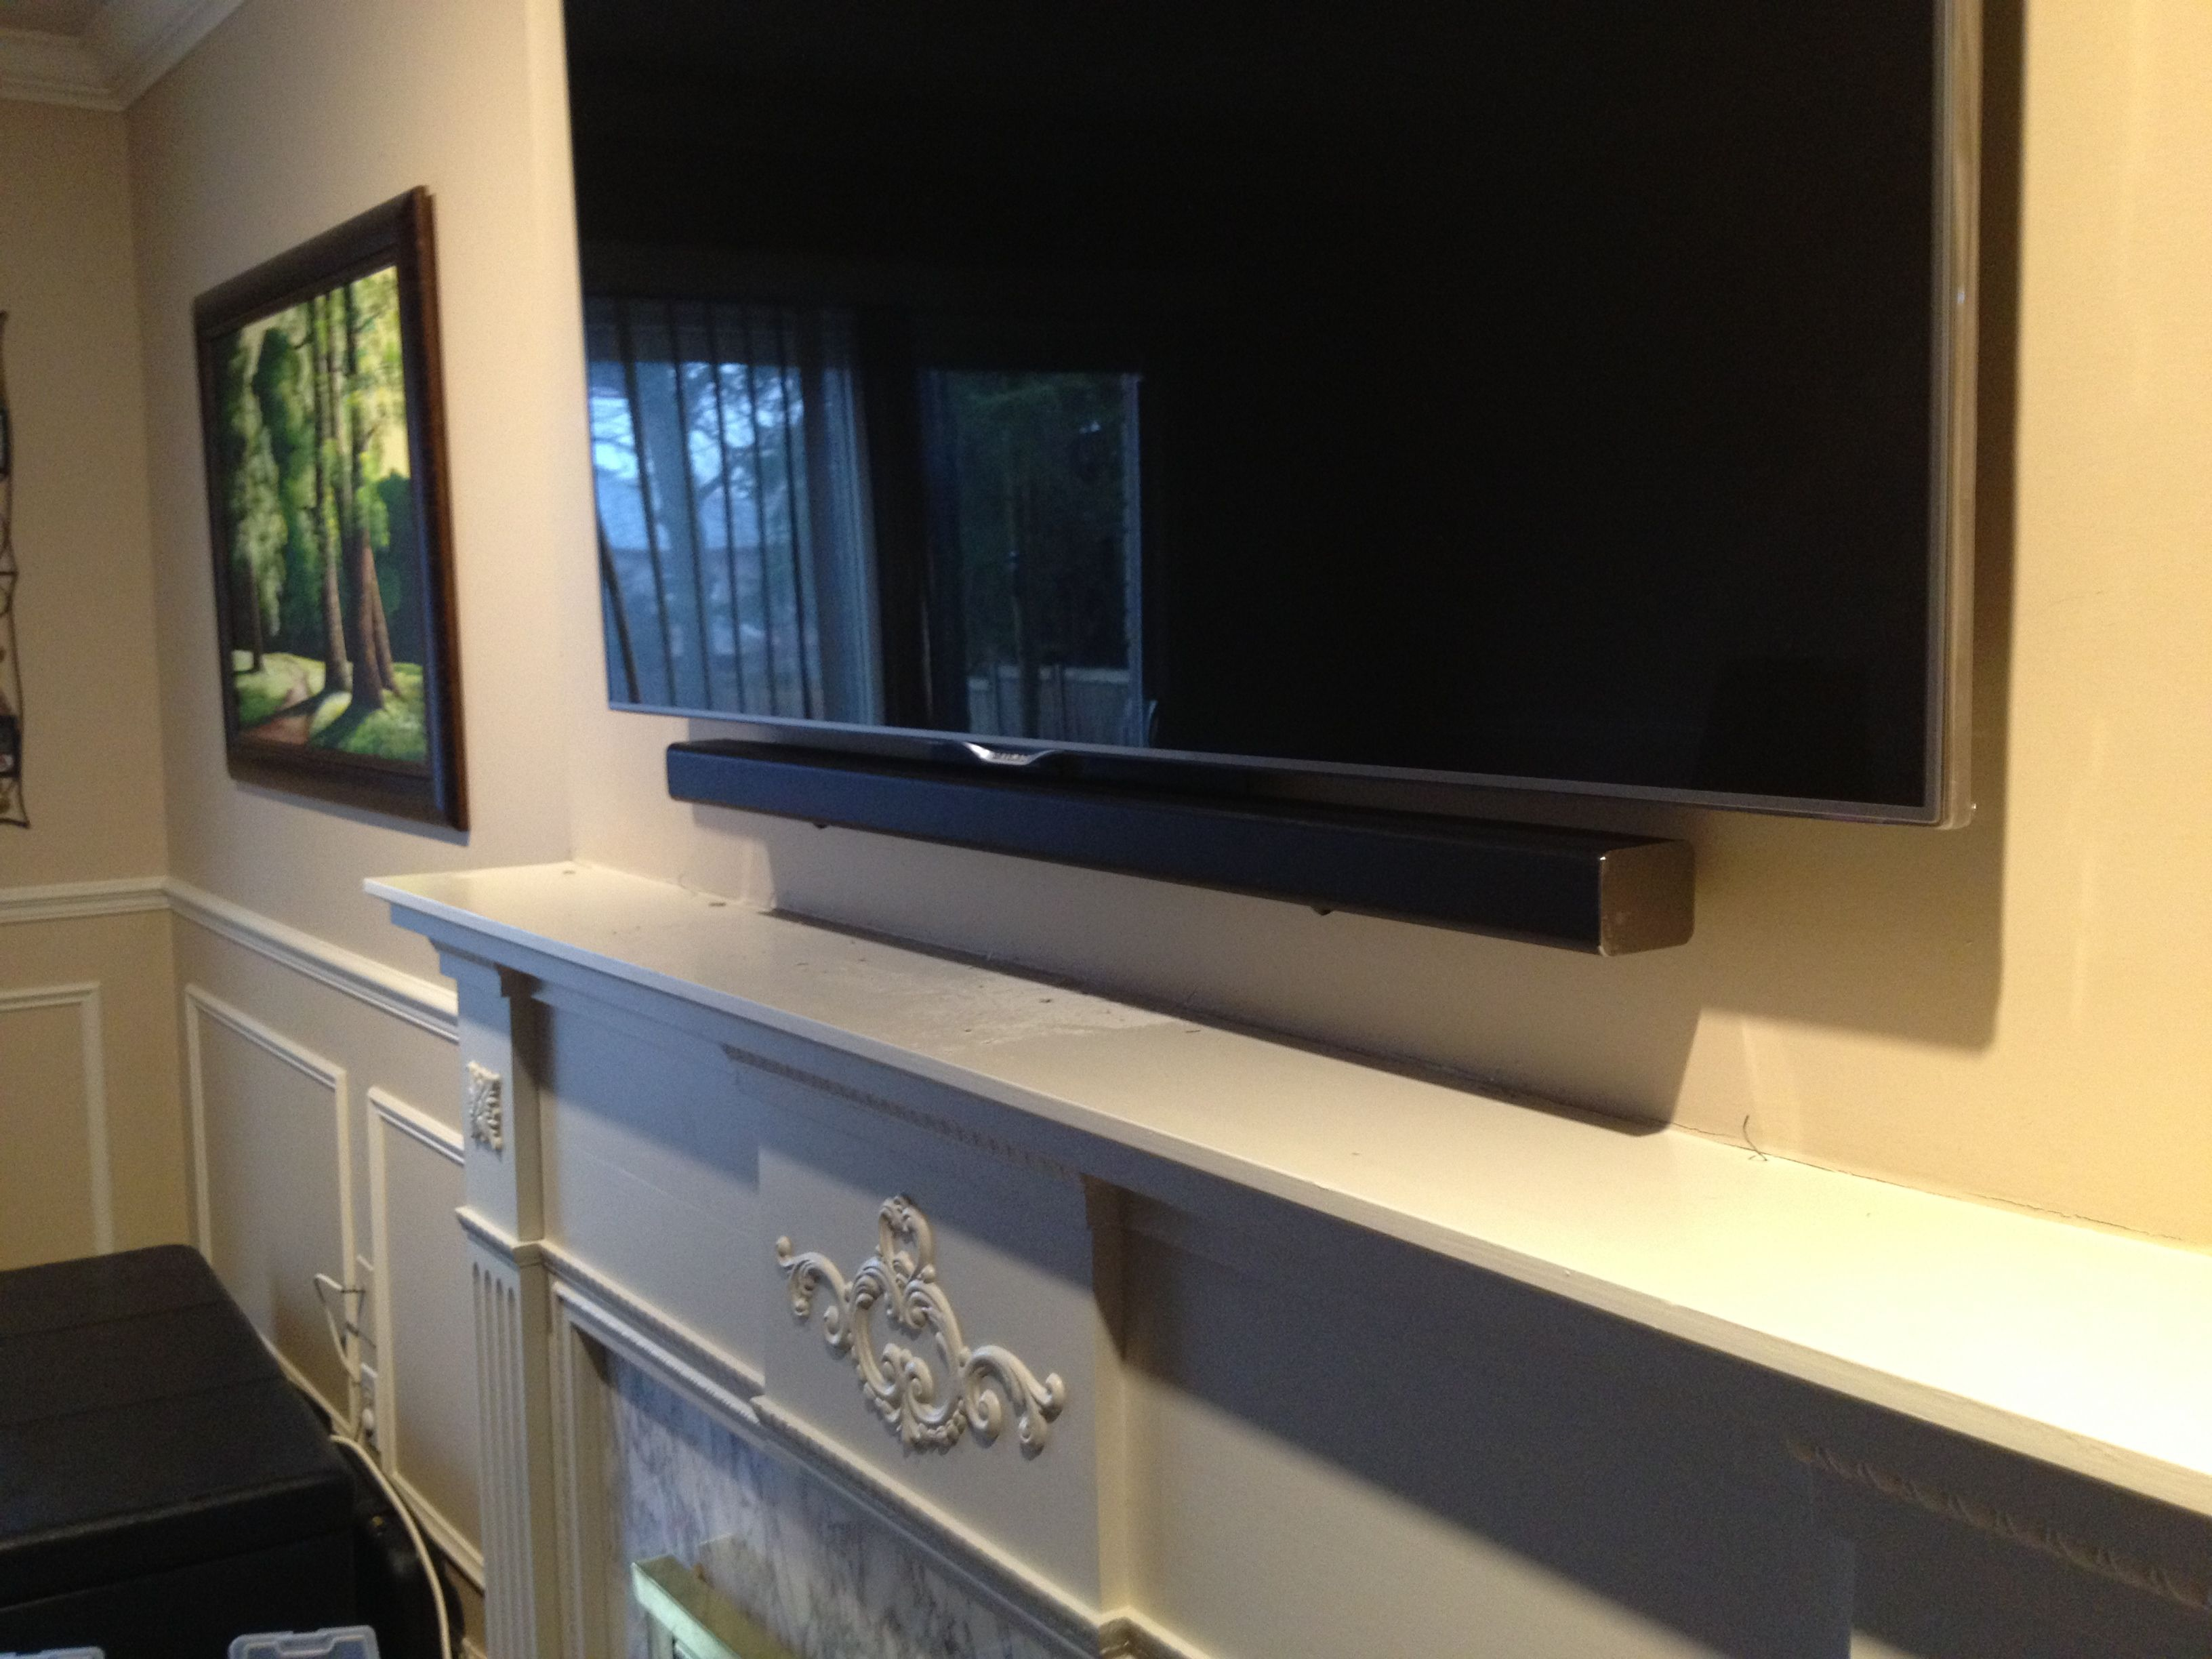 Samsung Sound Bar Installed Flush Against The Front Surface Of Tv Using Brackets And Some Ers To Make Fine Adjustments In Order It